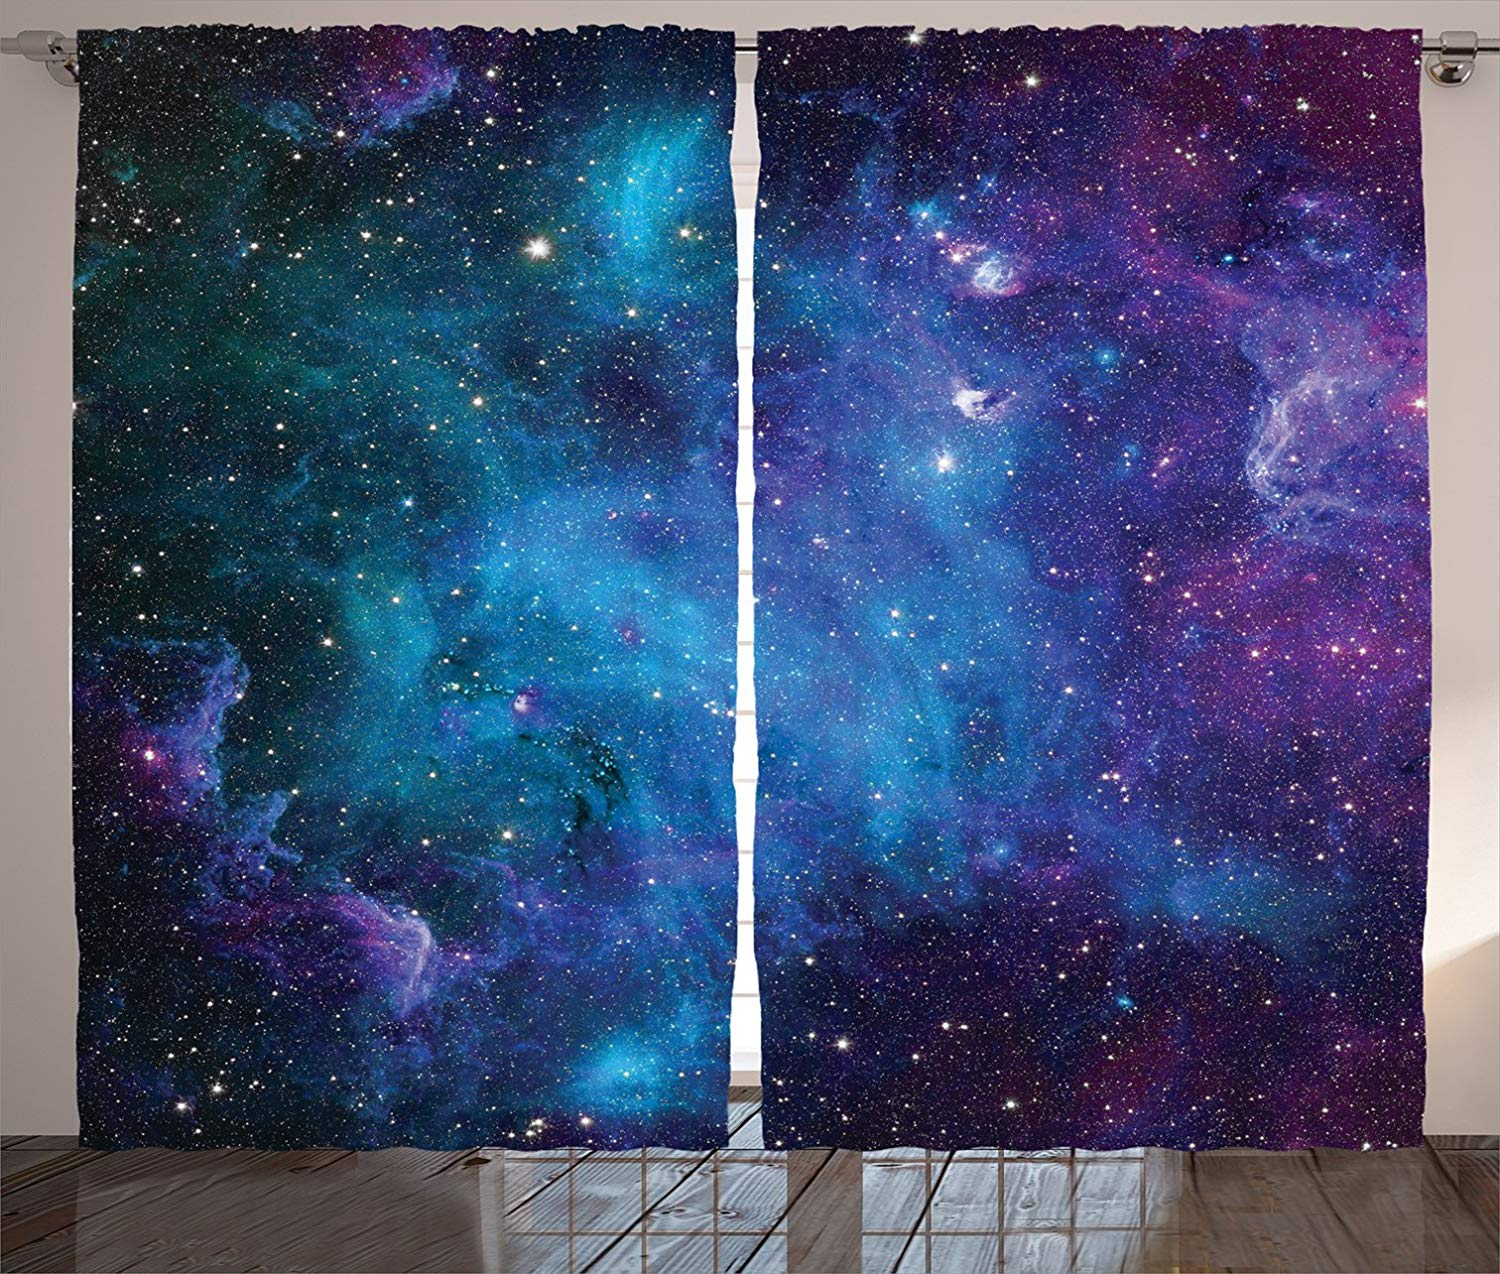 Space Decor Window Curtains Galaxy Stars In Celestial Astronomic Nebula Planets In Universe Drapes For Living Room Bedroom